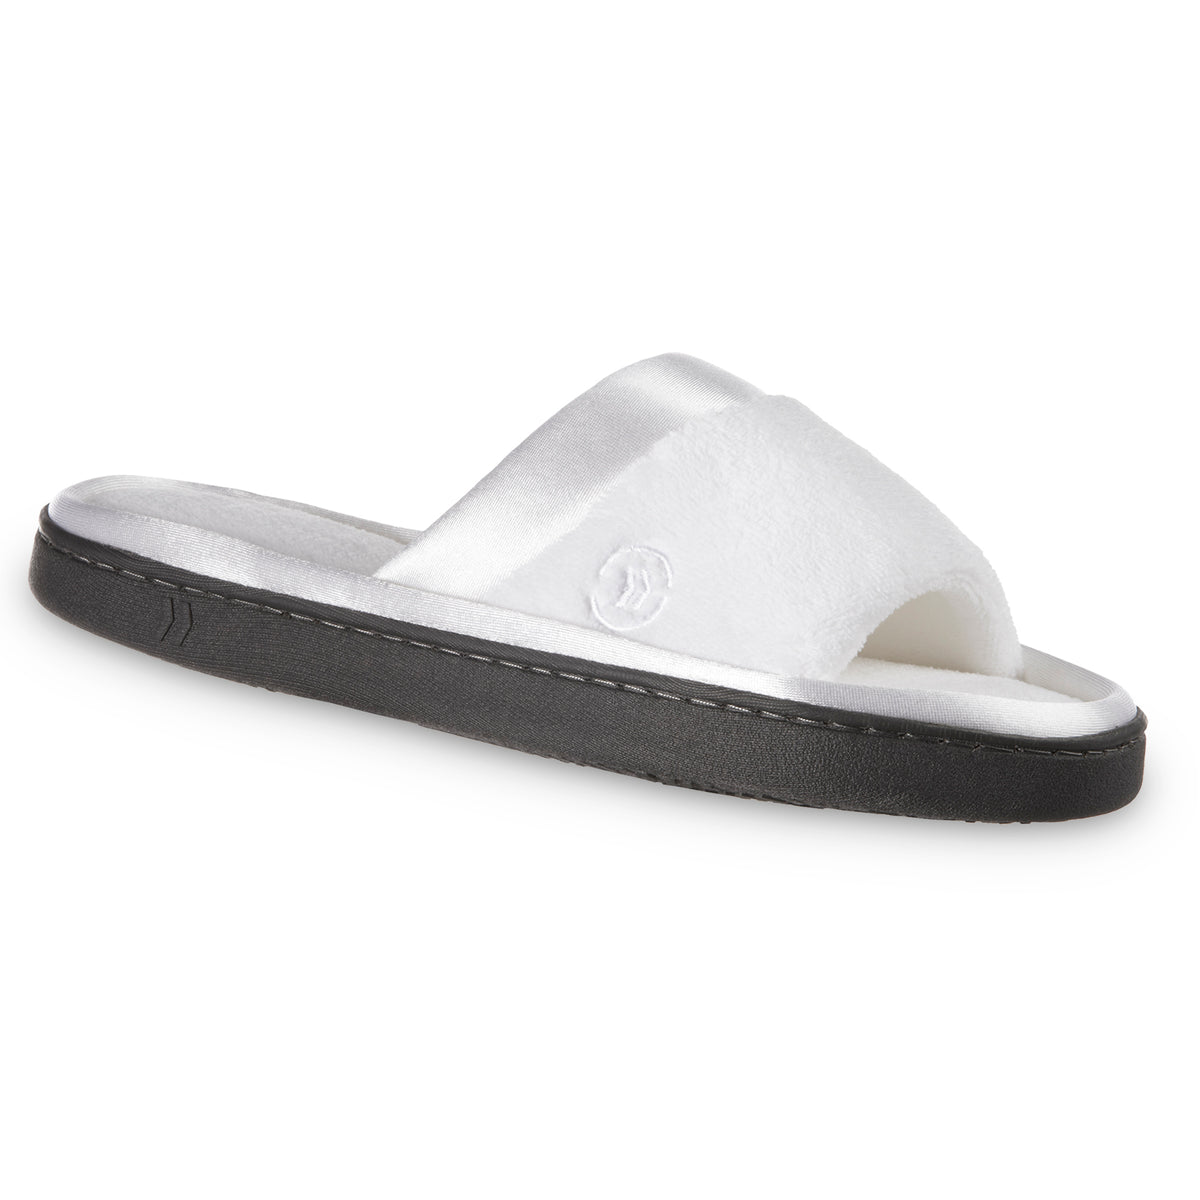 Women's Microterry Satin Trim Wider Width Slide Slippers